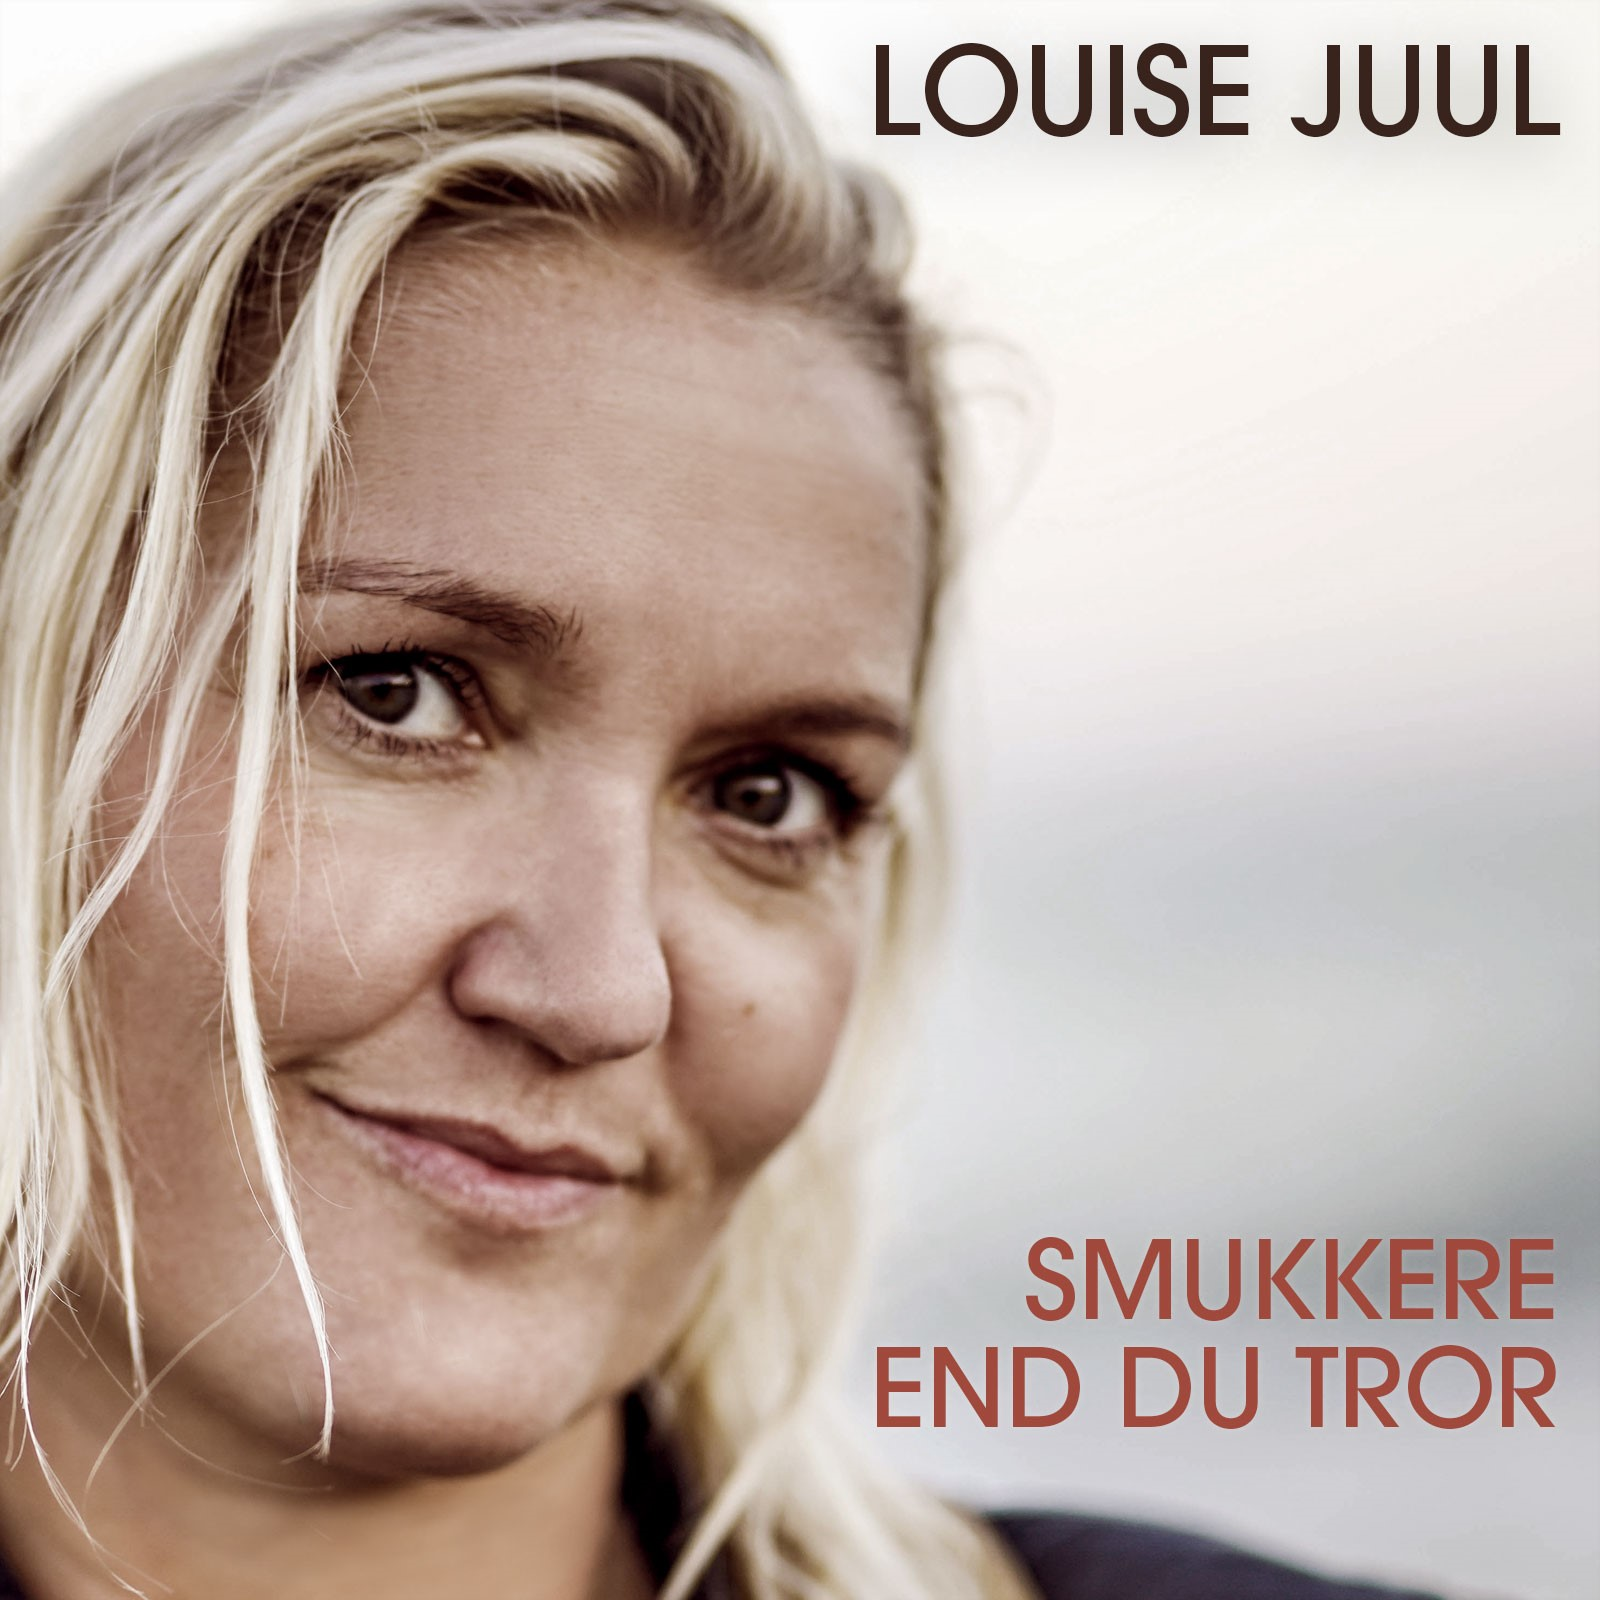 Louise Juul – Smukkere End Du Tror (single)